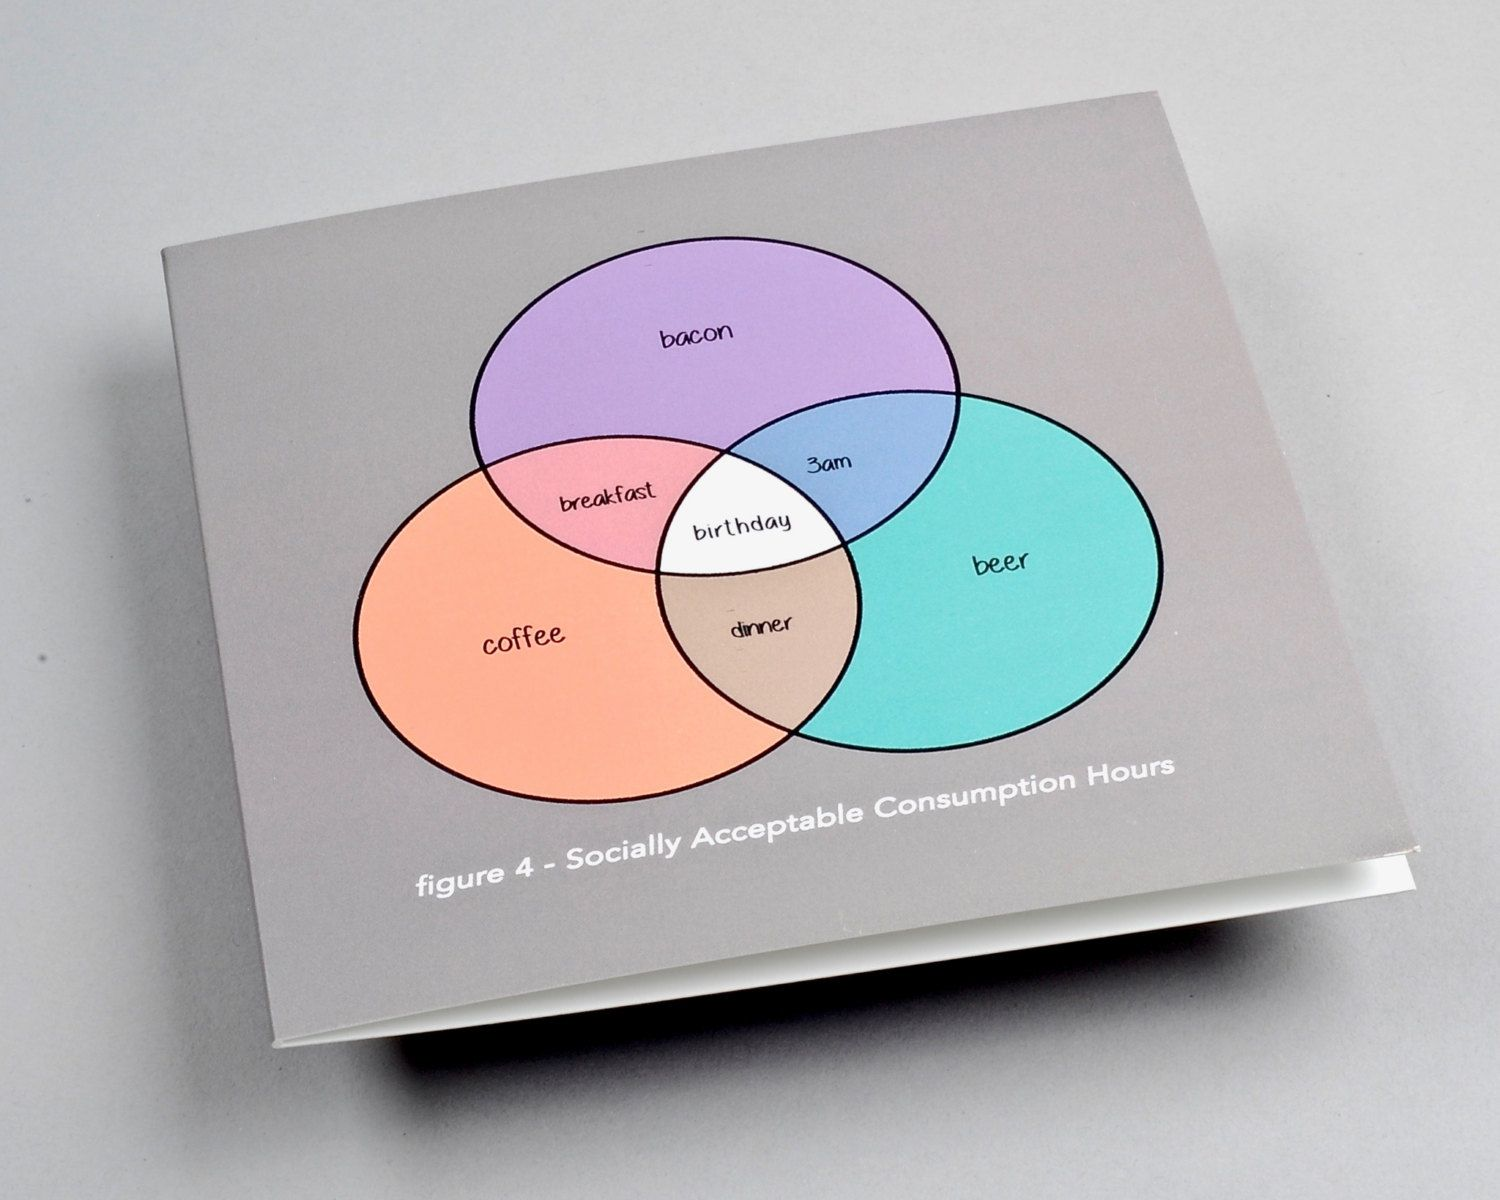 Funny birthday card maths birthday card venn diagram funny card funny birthday card happy birthday card venn diagram funny card puns pooptronica Images